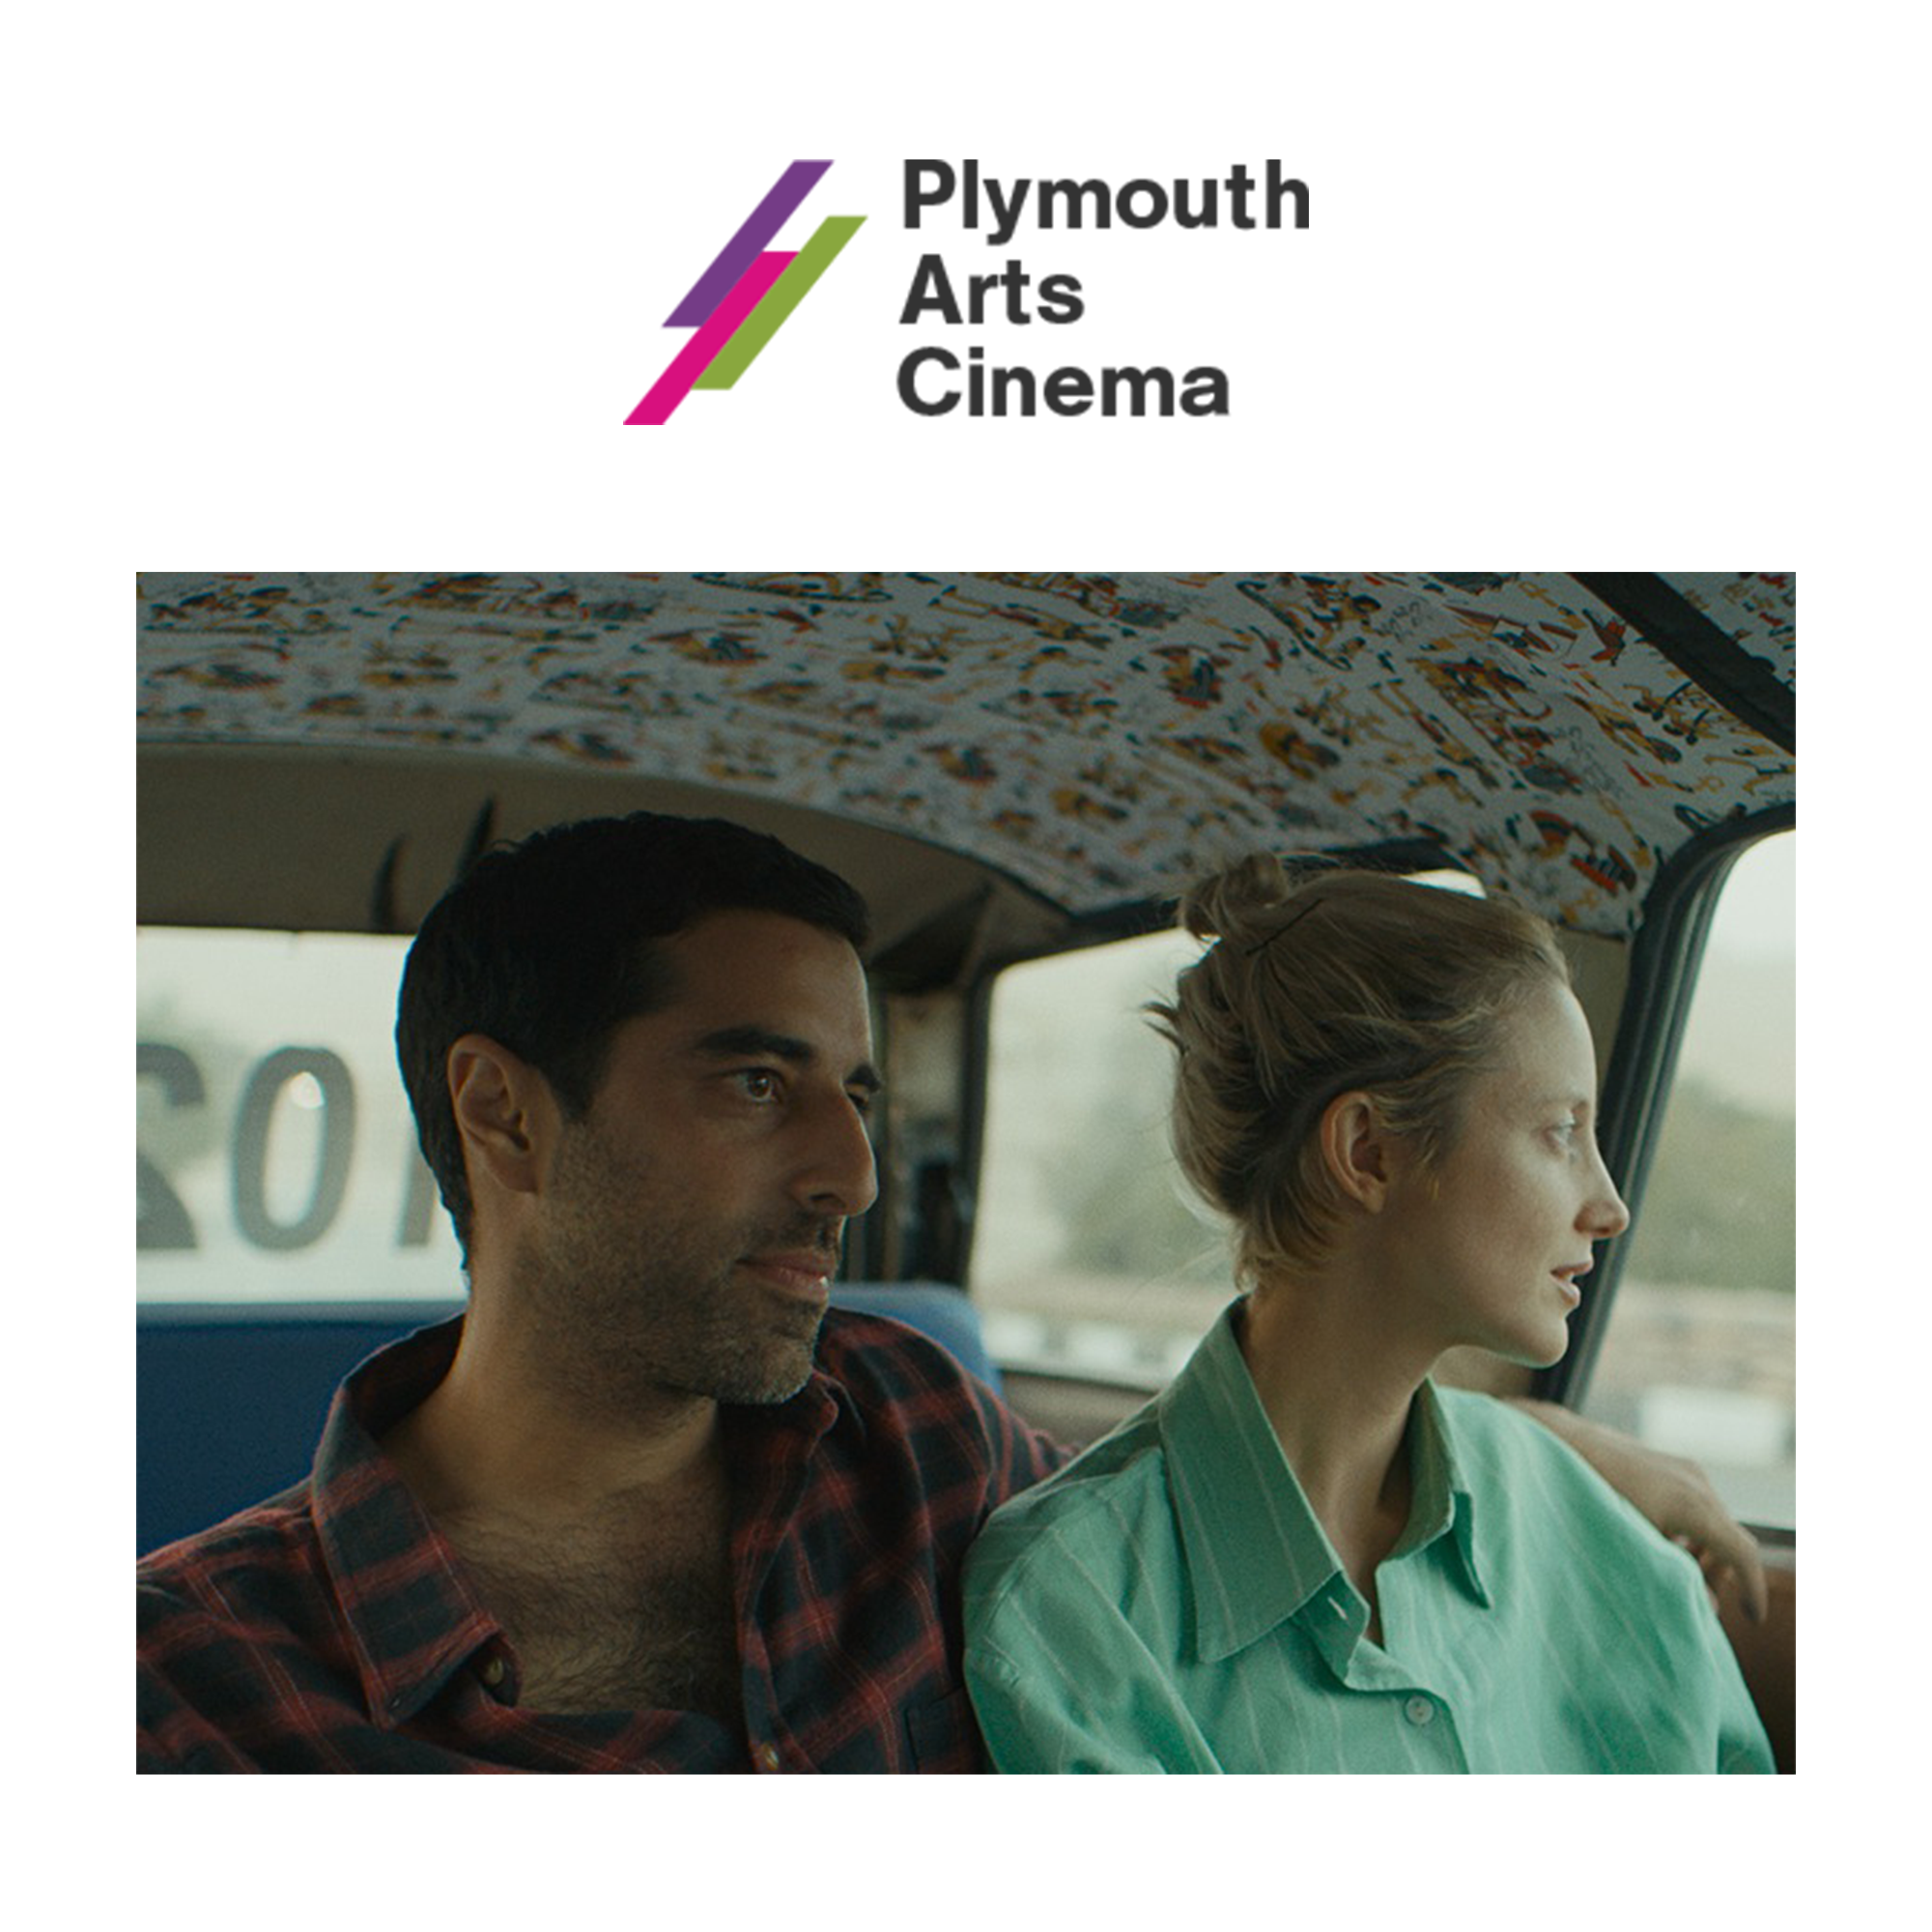 Luxor at Plymouth Arts Cinema